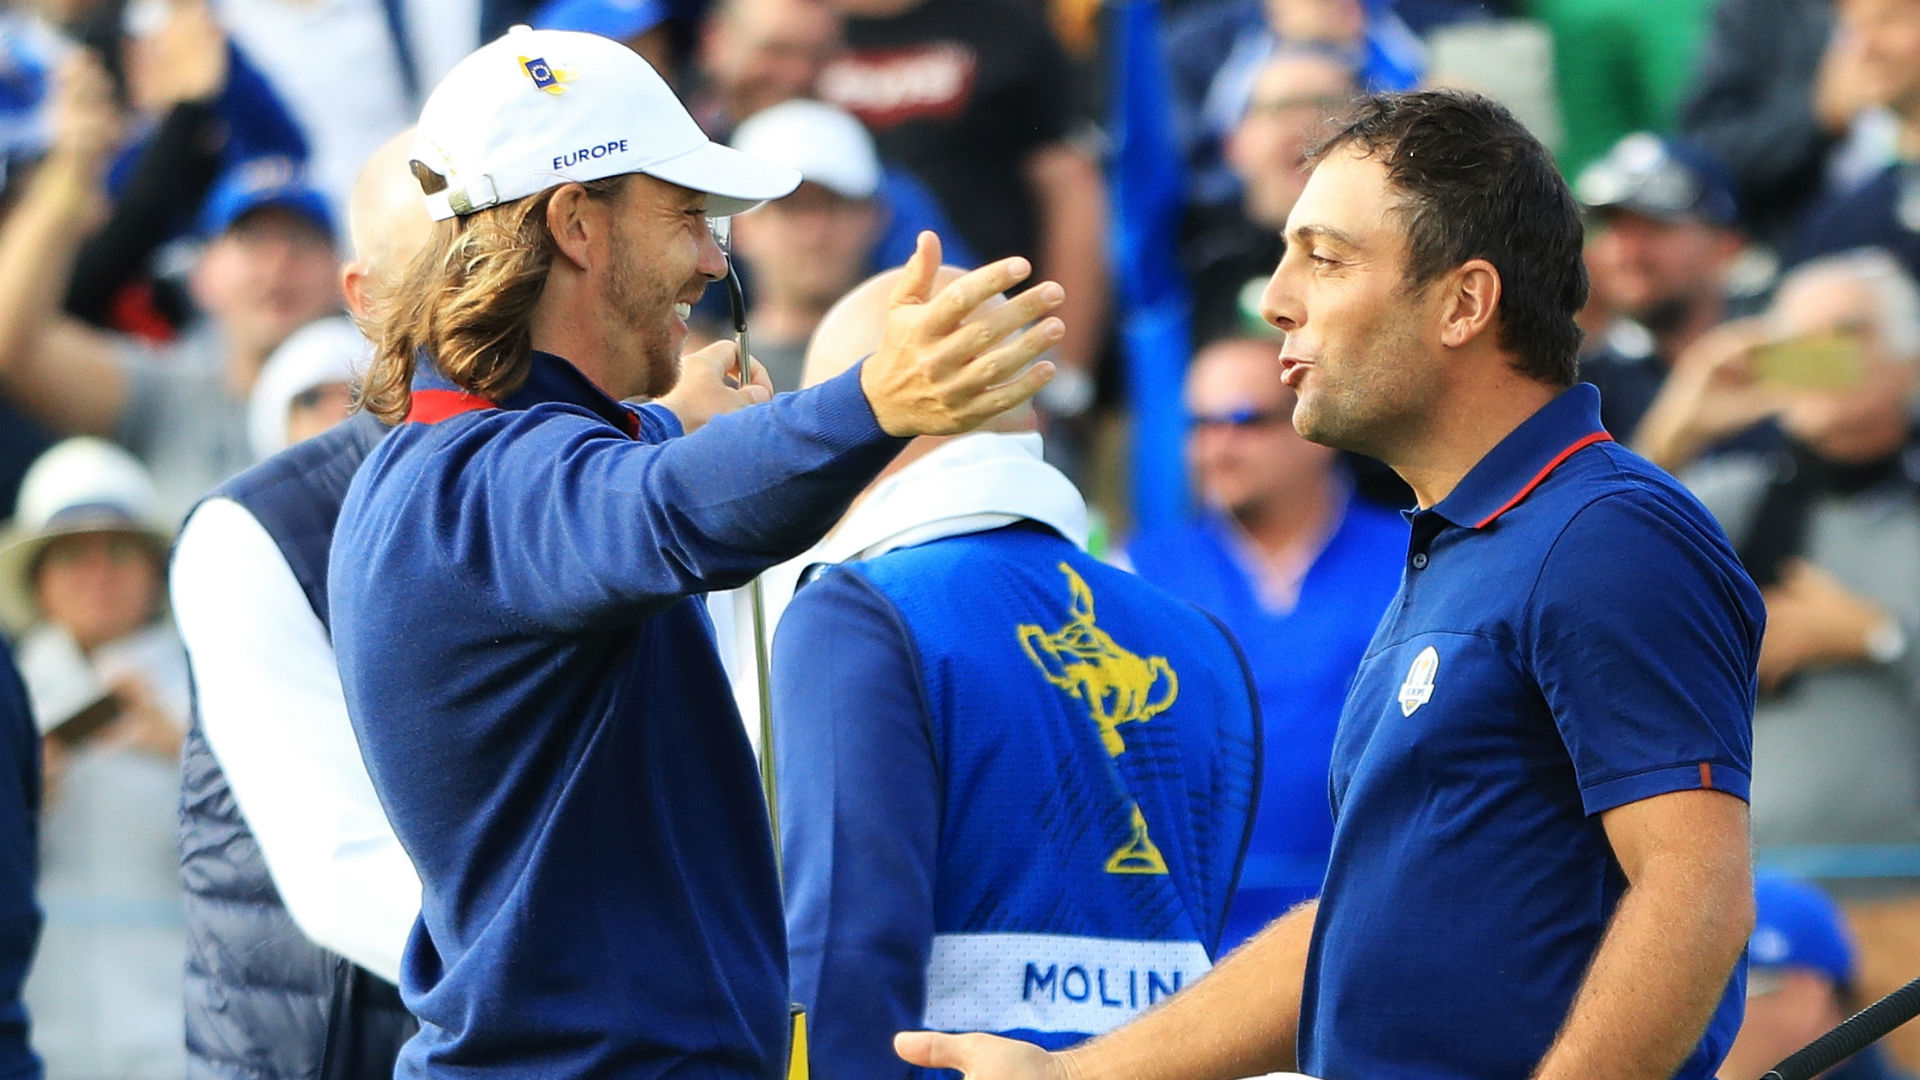 Ryder Cup 2018: Three takeaways from Europe's win over USA